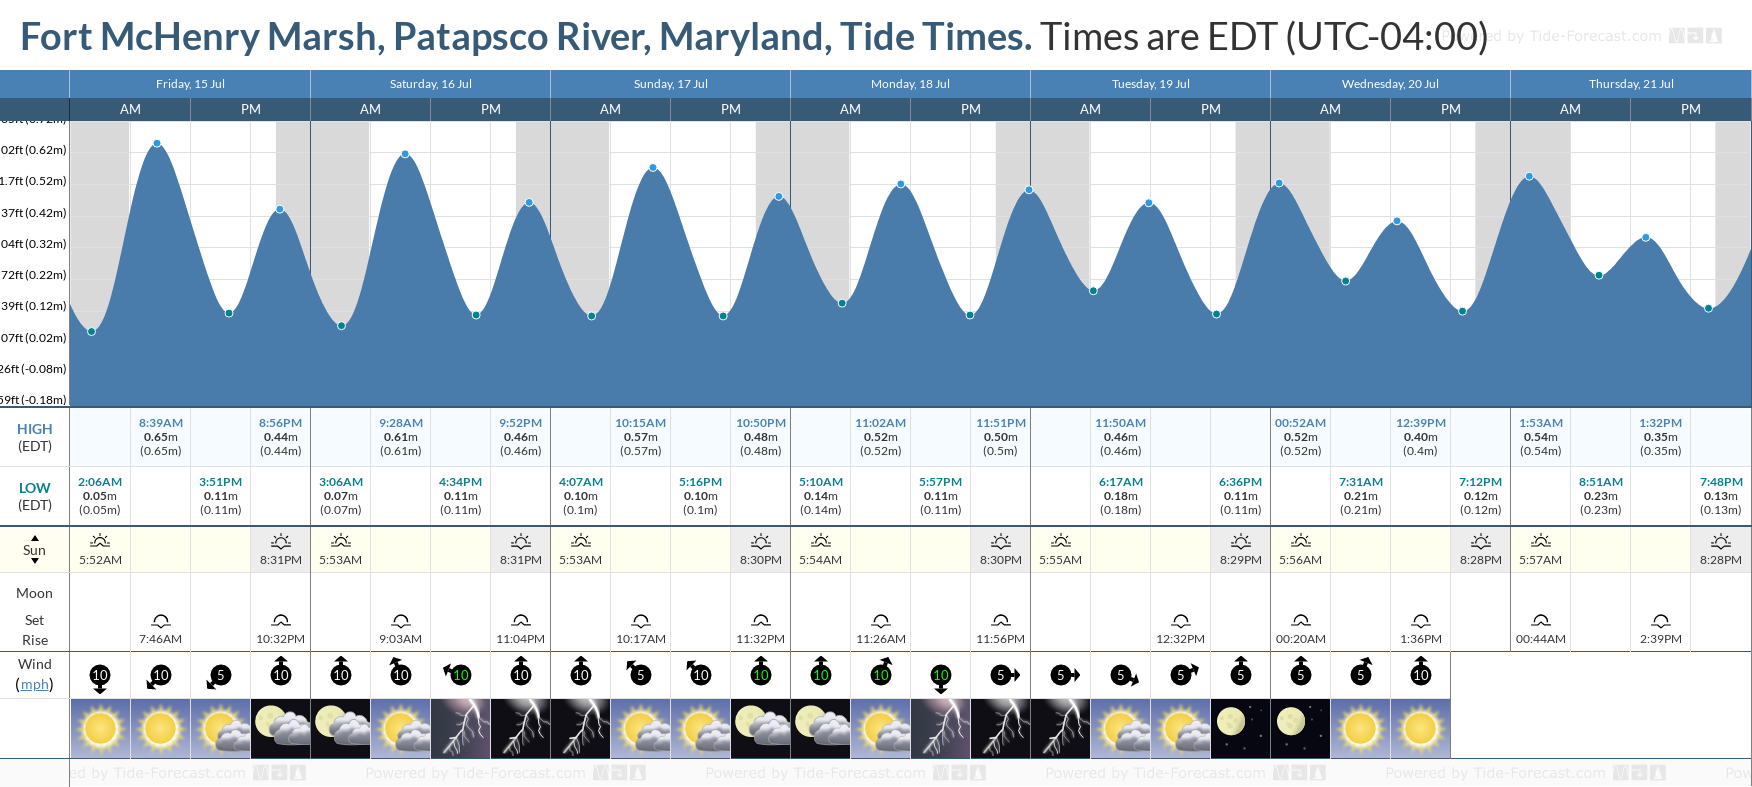 Fort McHenry Marsh, Patapsco River, Maryland Tide Chart including high and low tide tide times for the next 7 days